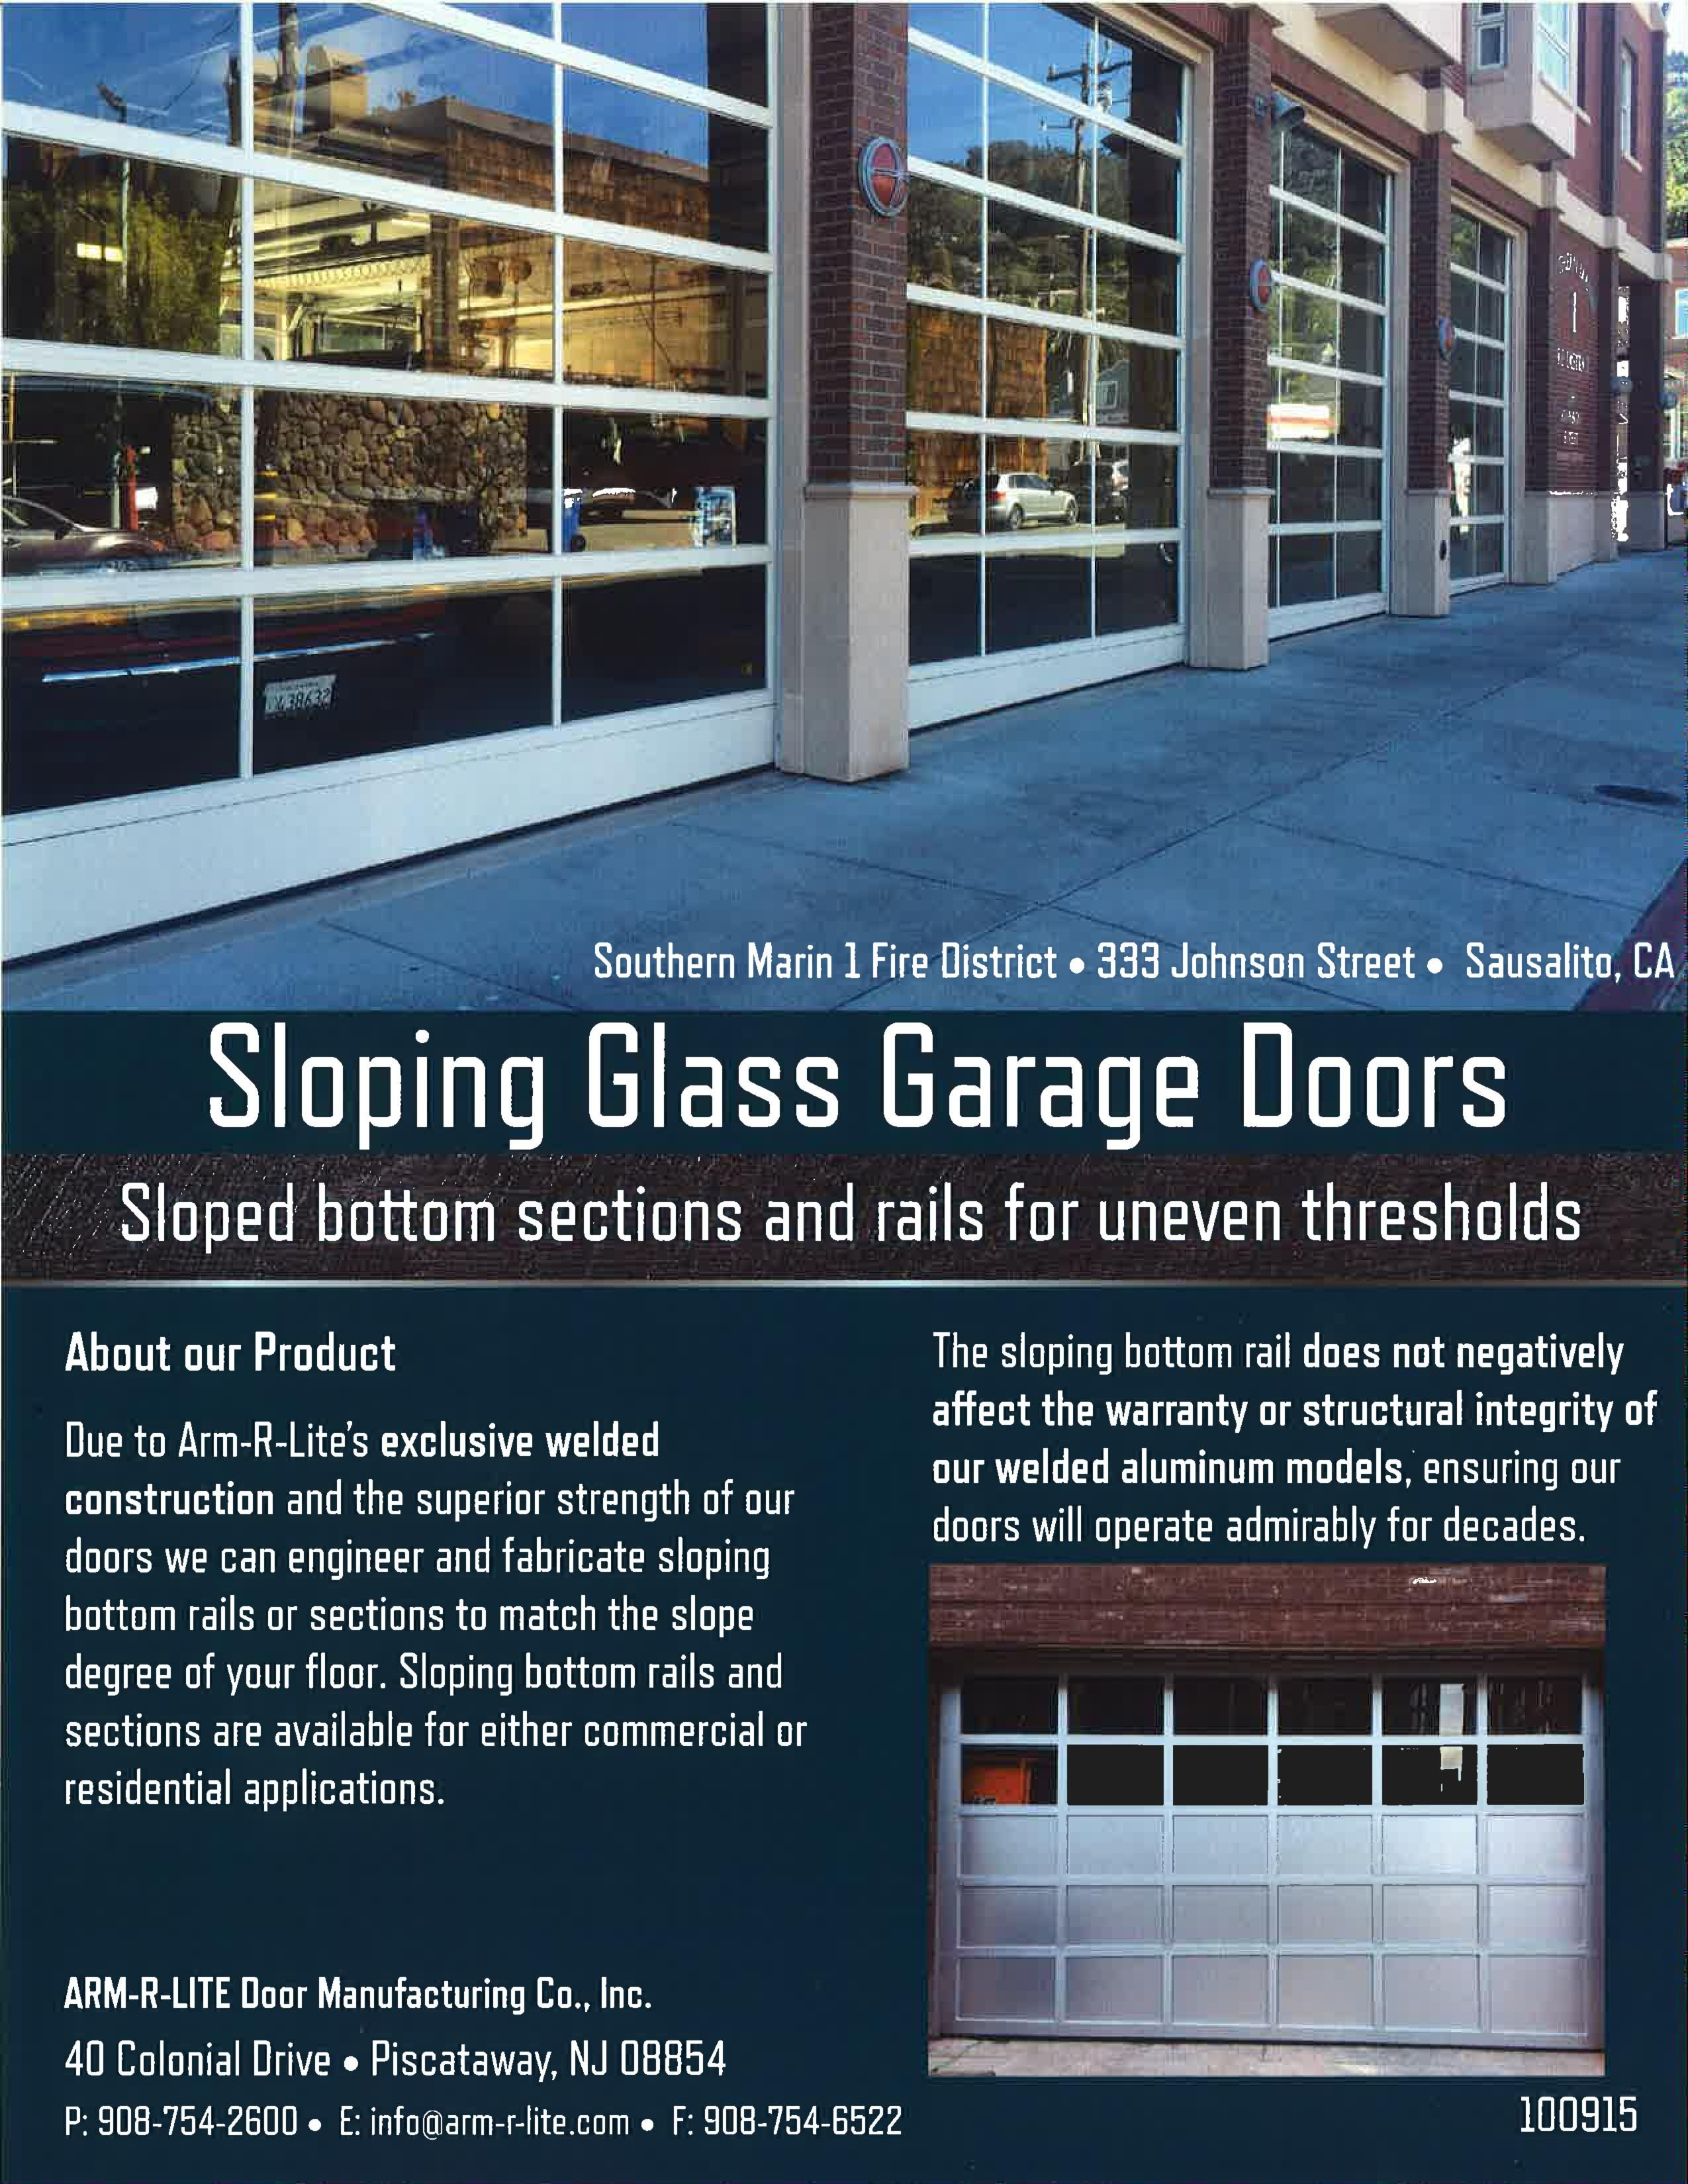 Sloping Bottom Glass Garage Doors By Arm R Lite Are A Great Option